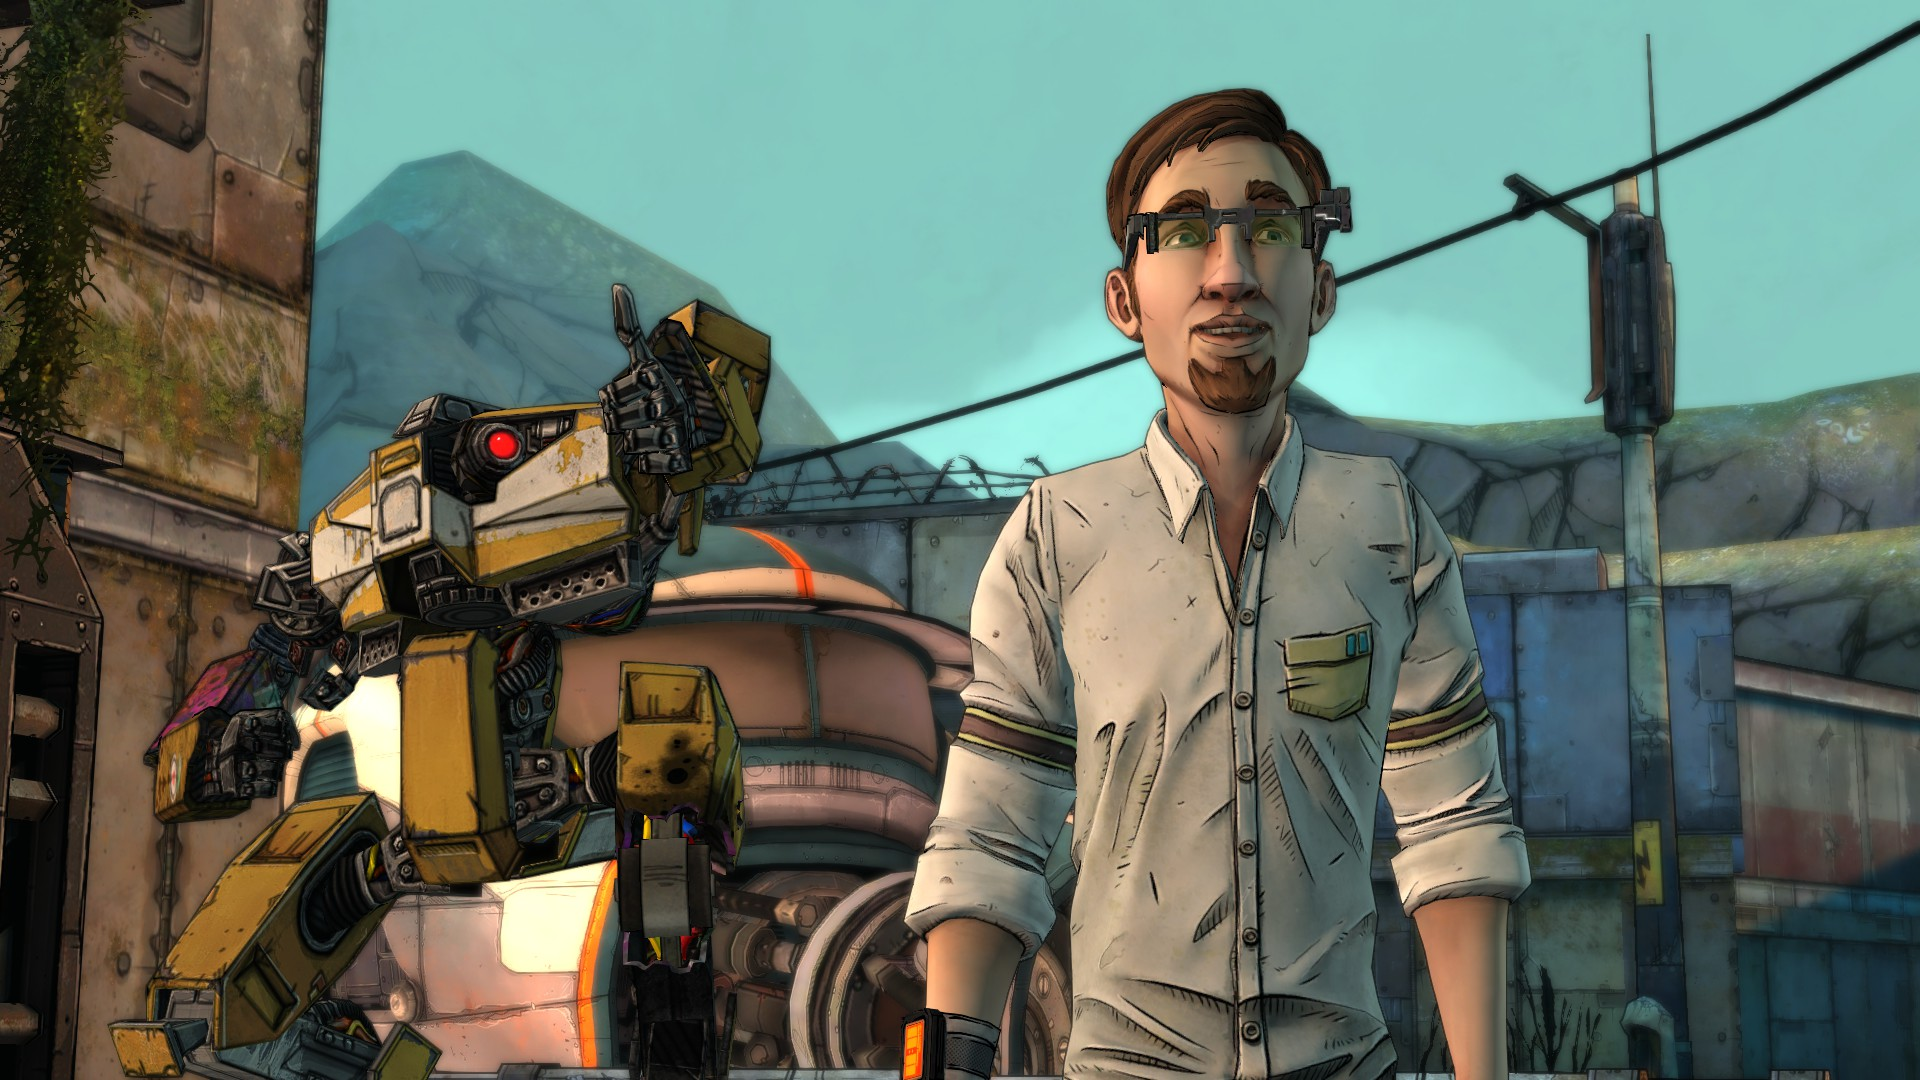 Tales from the Borderlands Episode 2: Atlas Mugged review (XBLA)